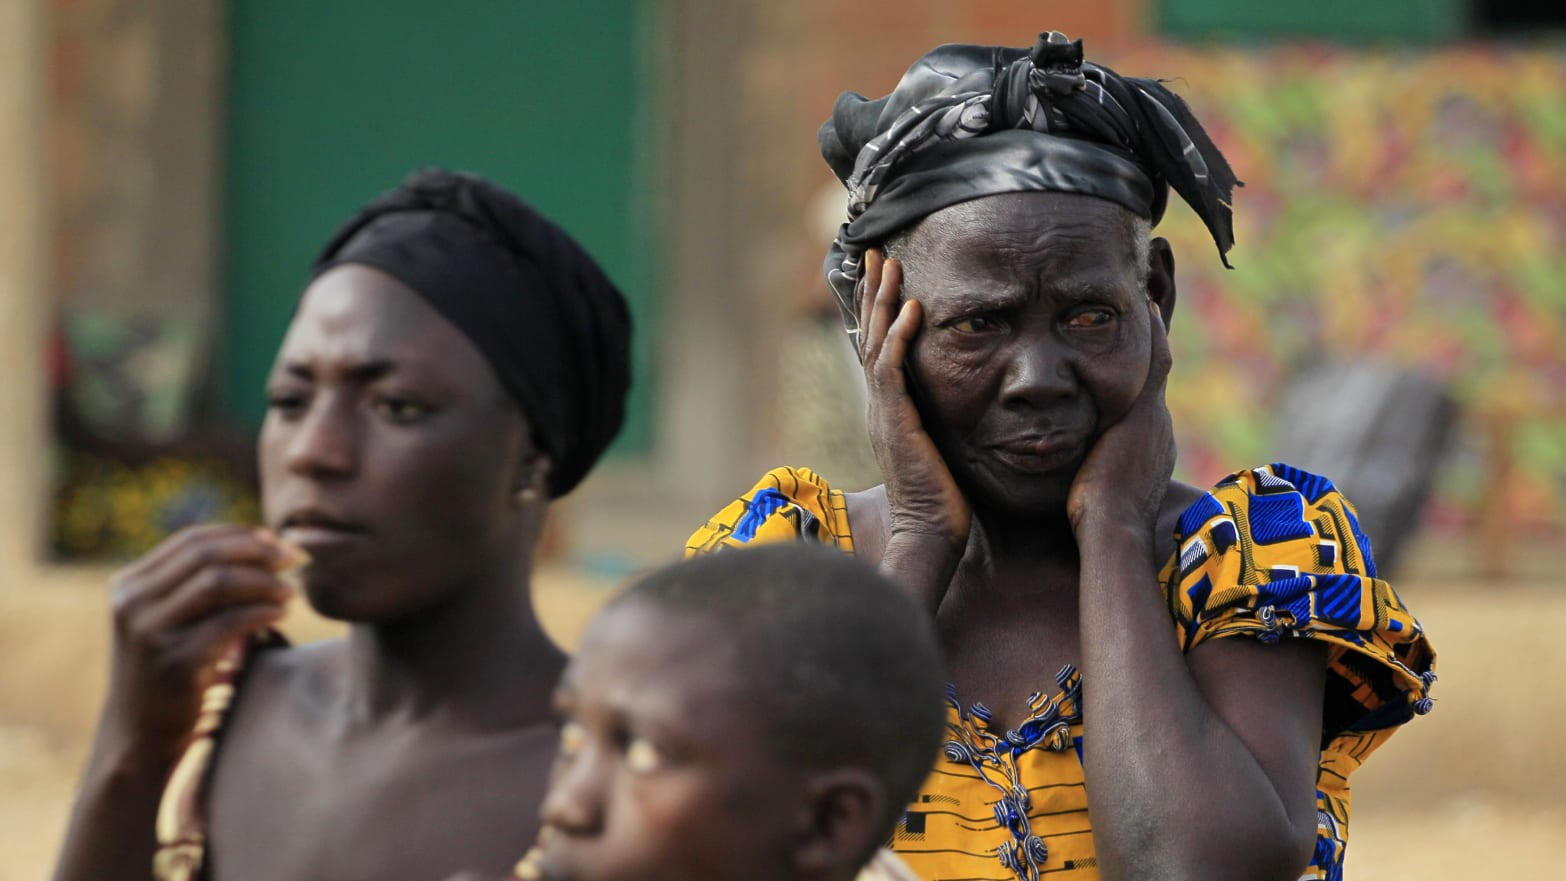 The Nigerian War That's Slaughtered More People Than Boko Haram